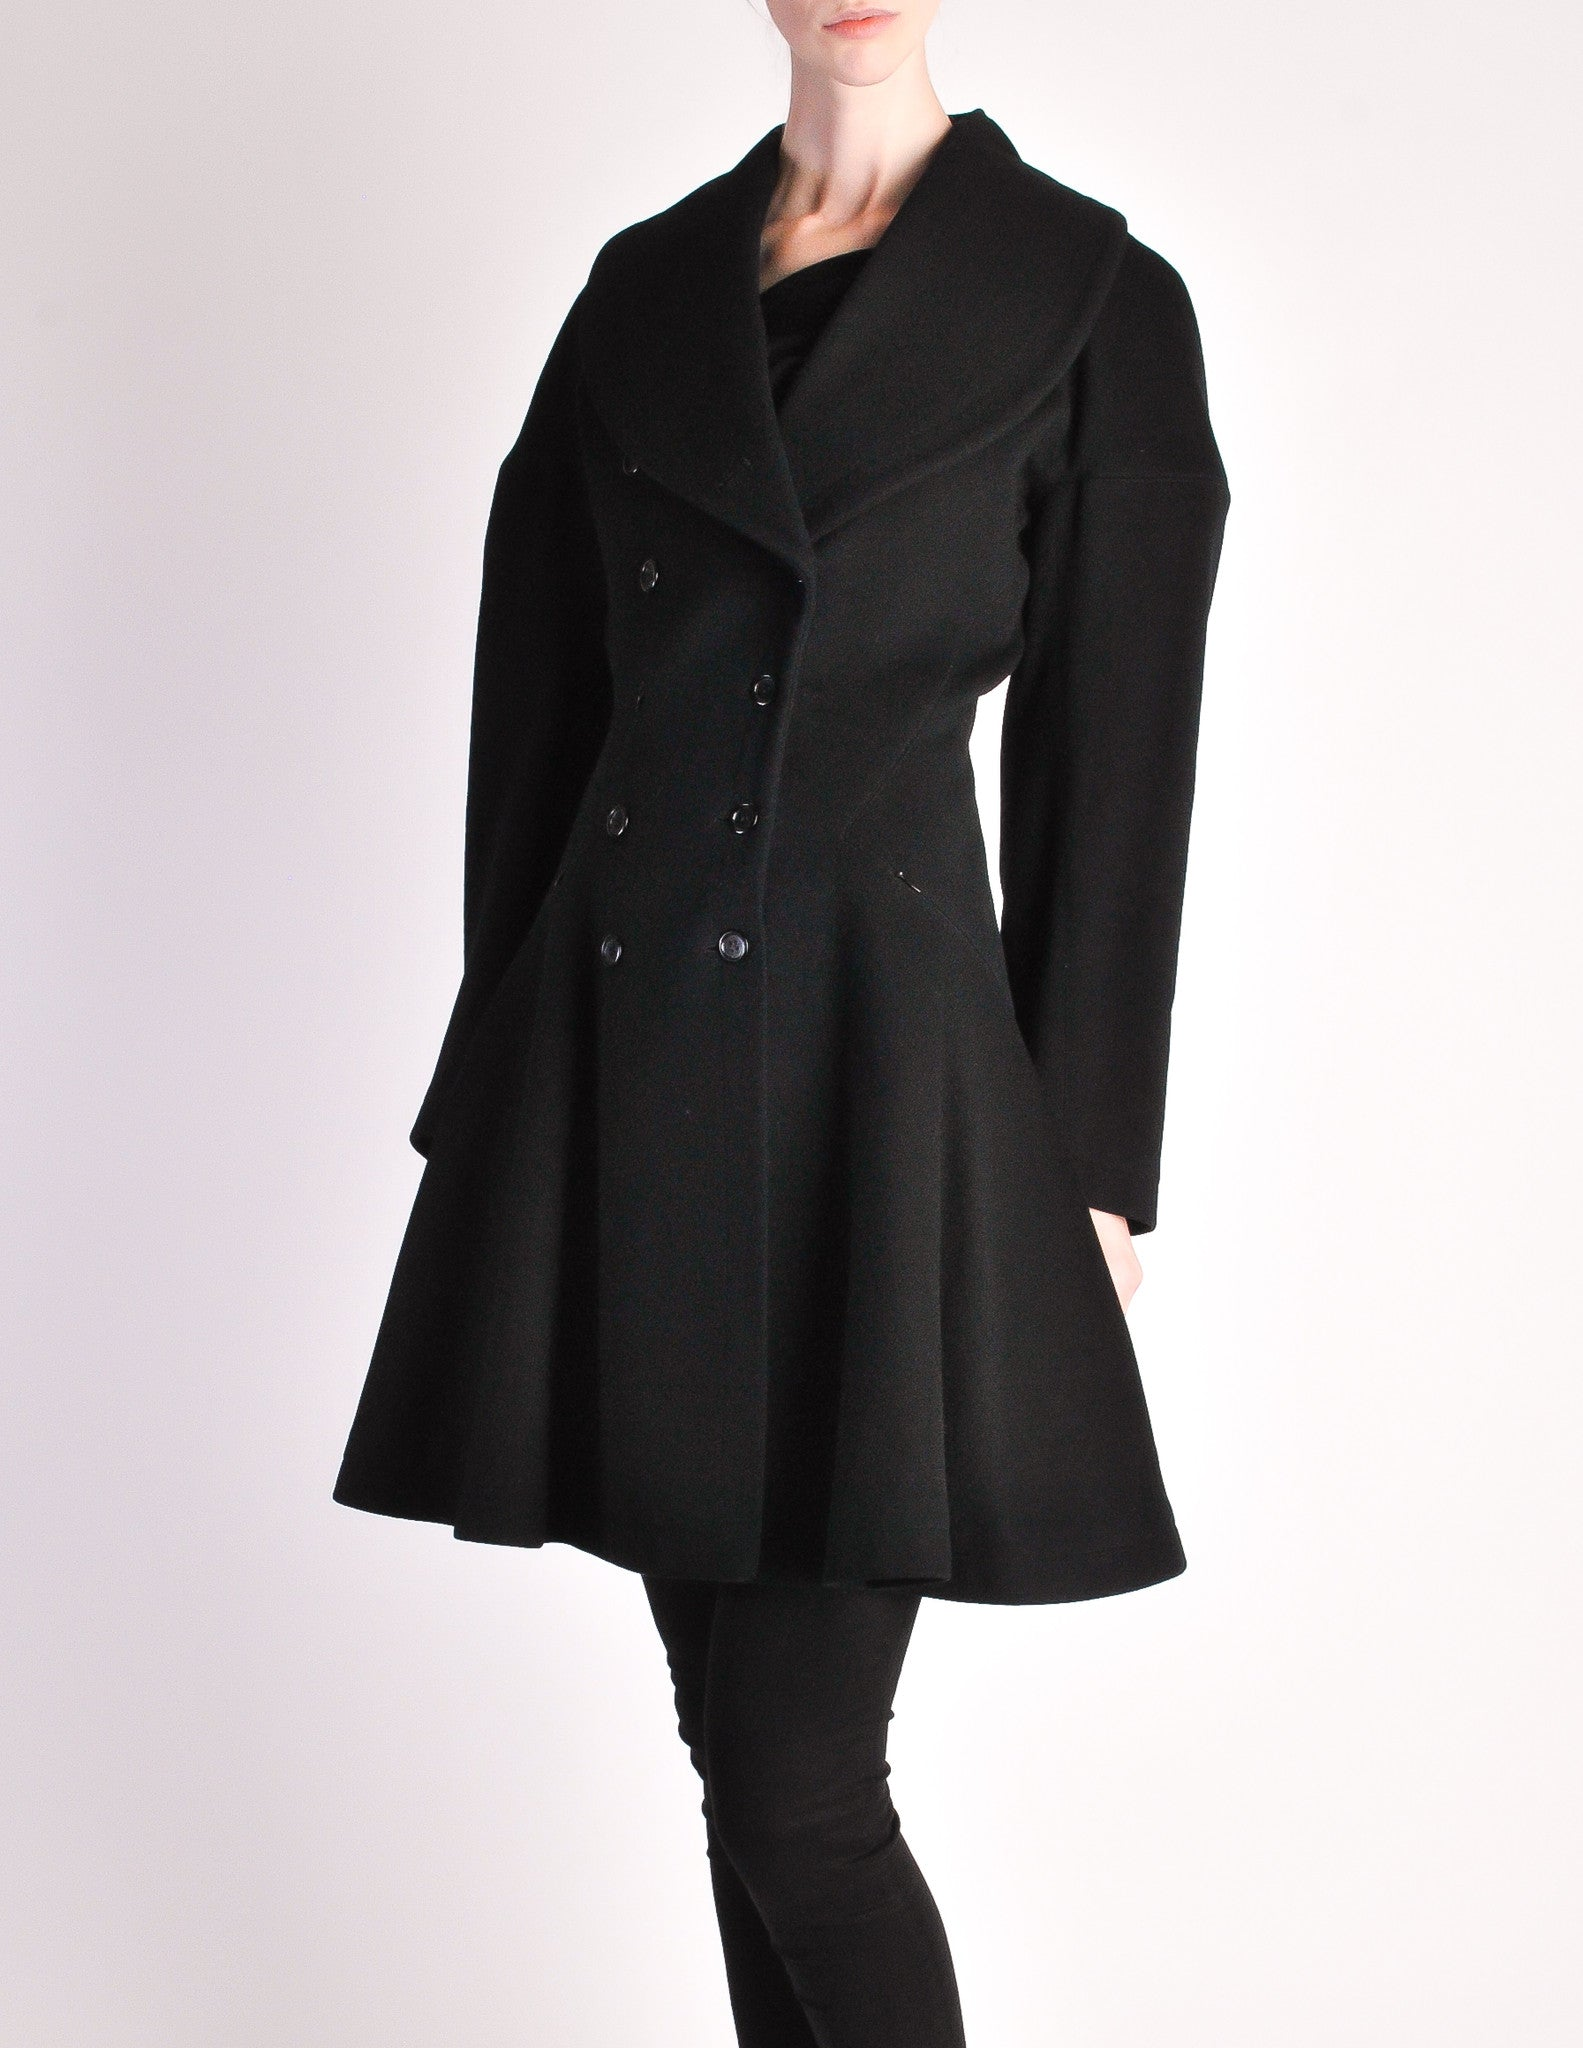 Alaïa Vintage Black Wool Double Breasted Coat - from Amarcord